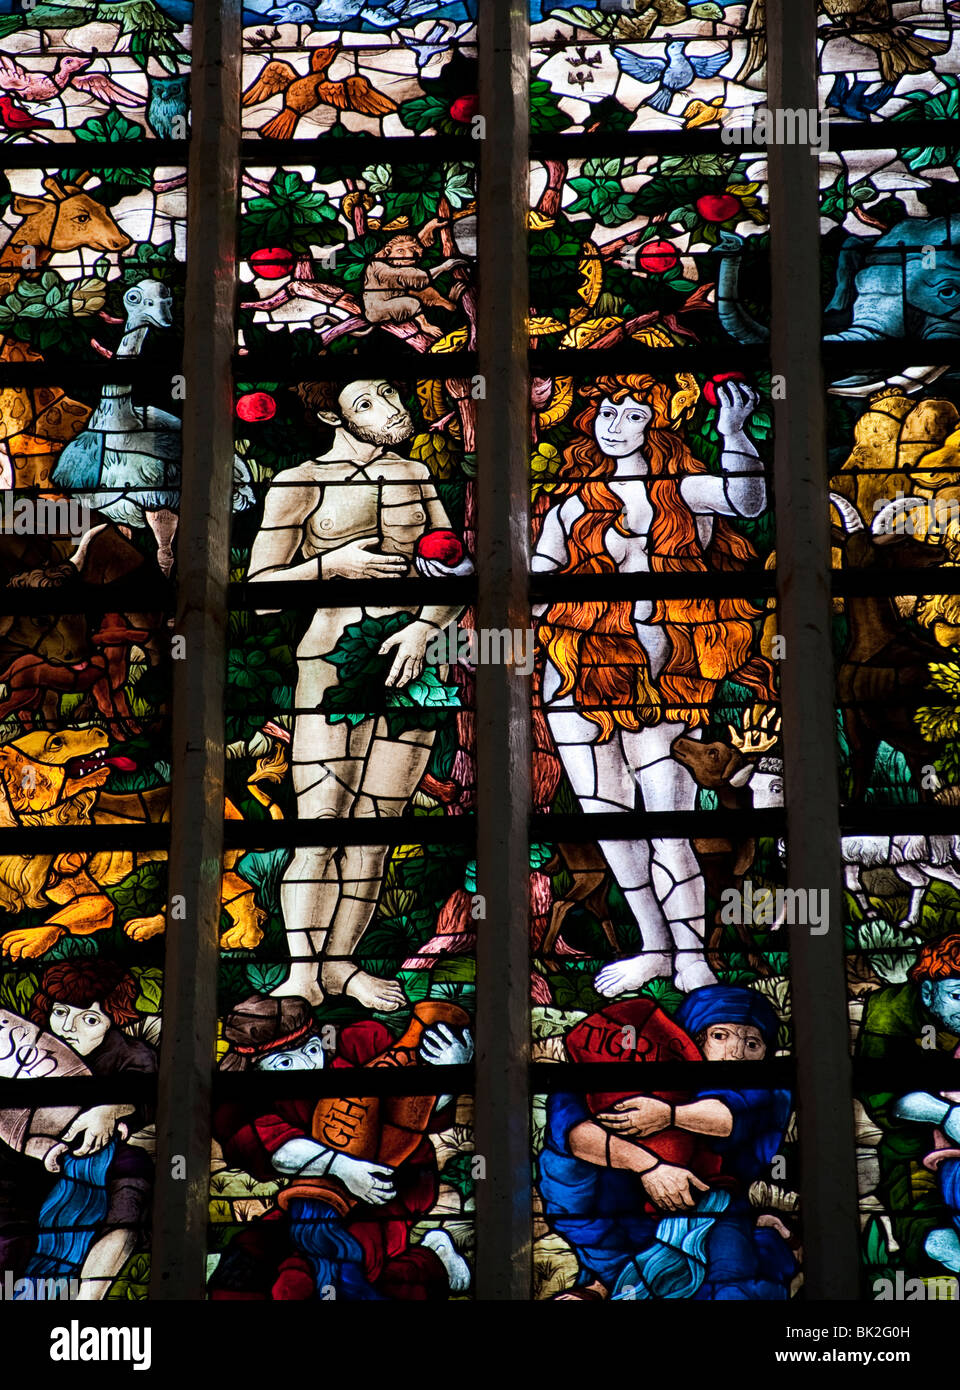 Stained glass windows in Oude Kerk or Old church in Delft The Netherlands - Stock Image